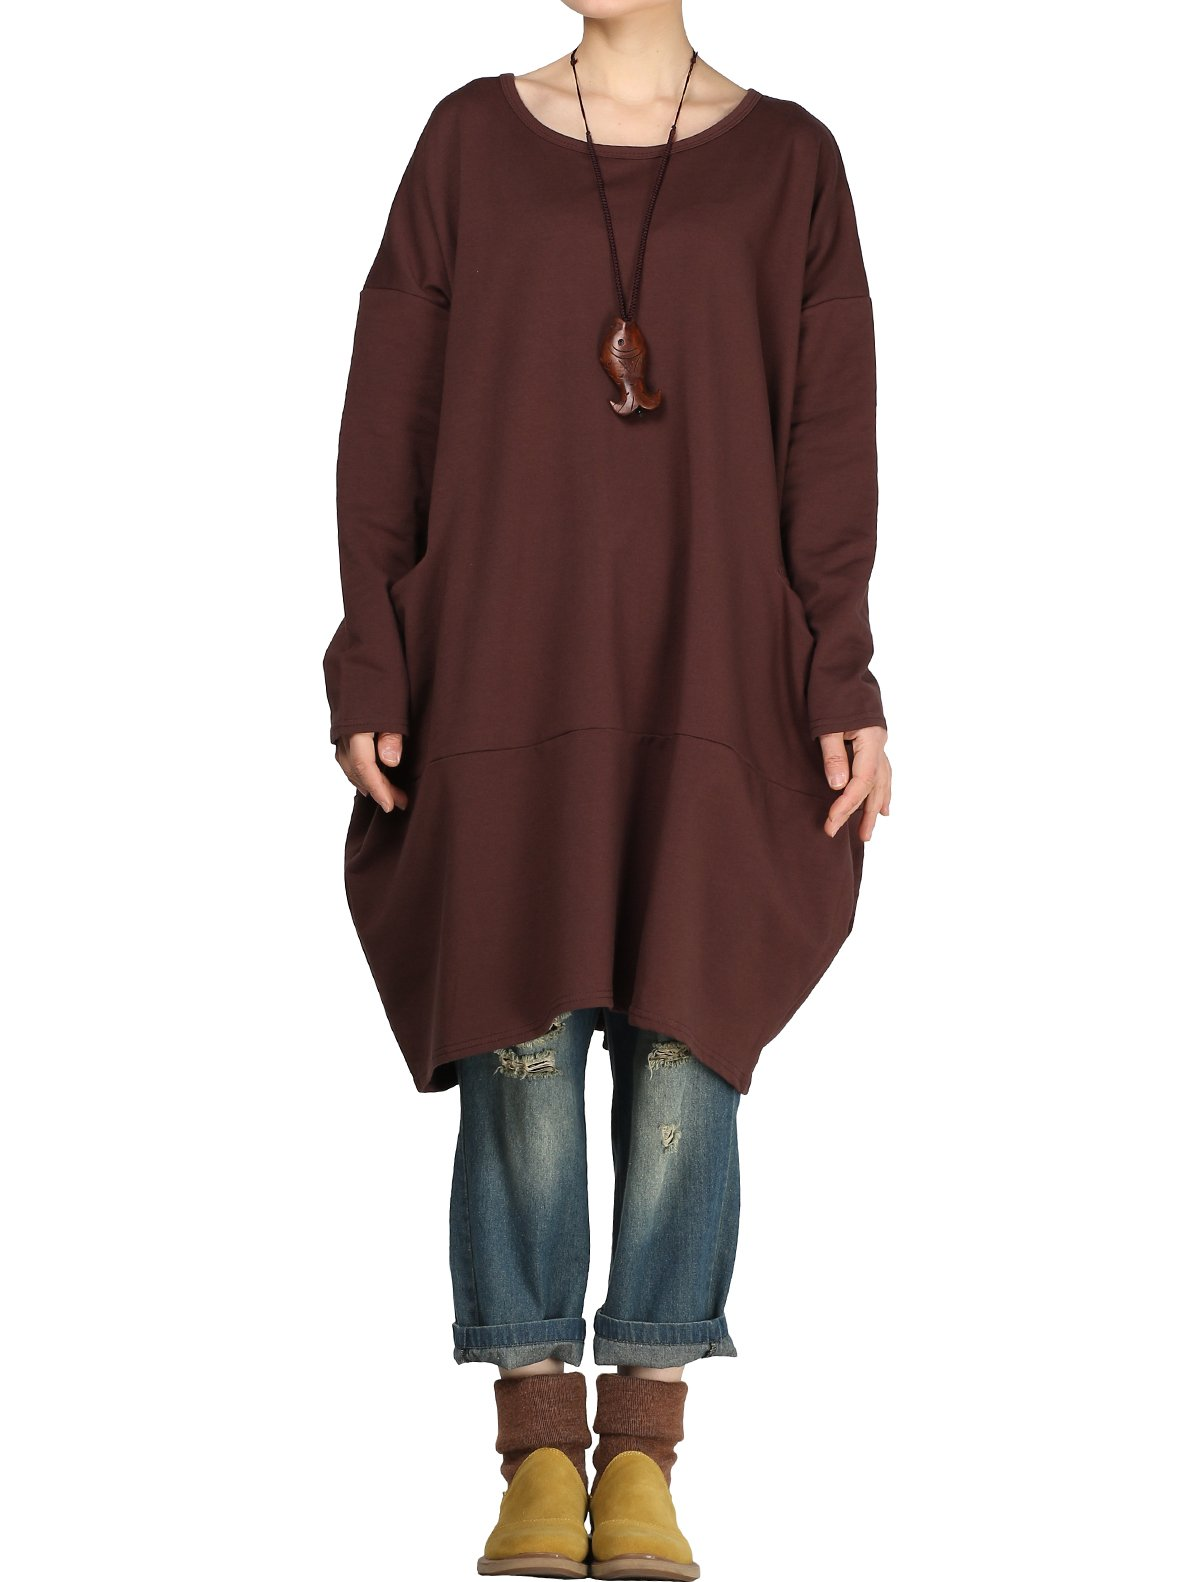 Mordenmiss Women's Stylish Sweatshirt Dress Knitted Jumpers Blouse Pullover w/Pockets L Coffee